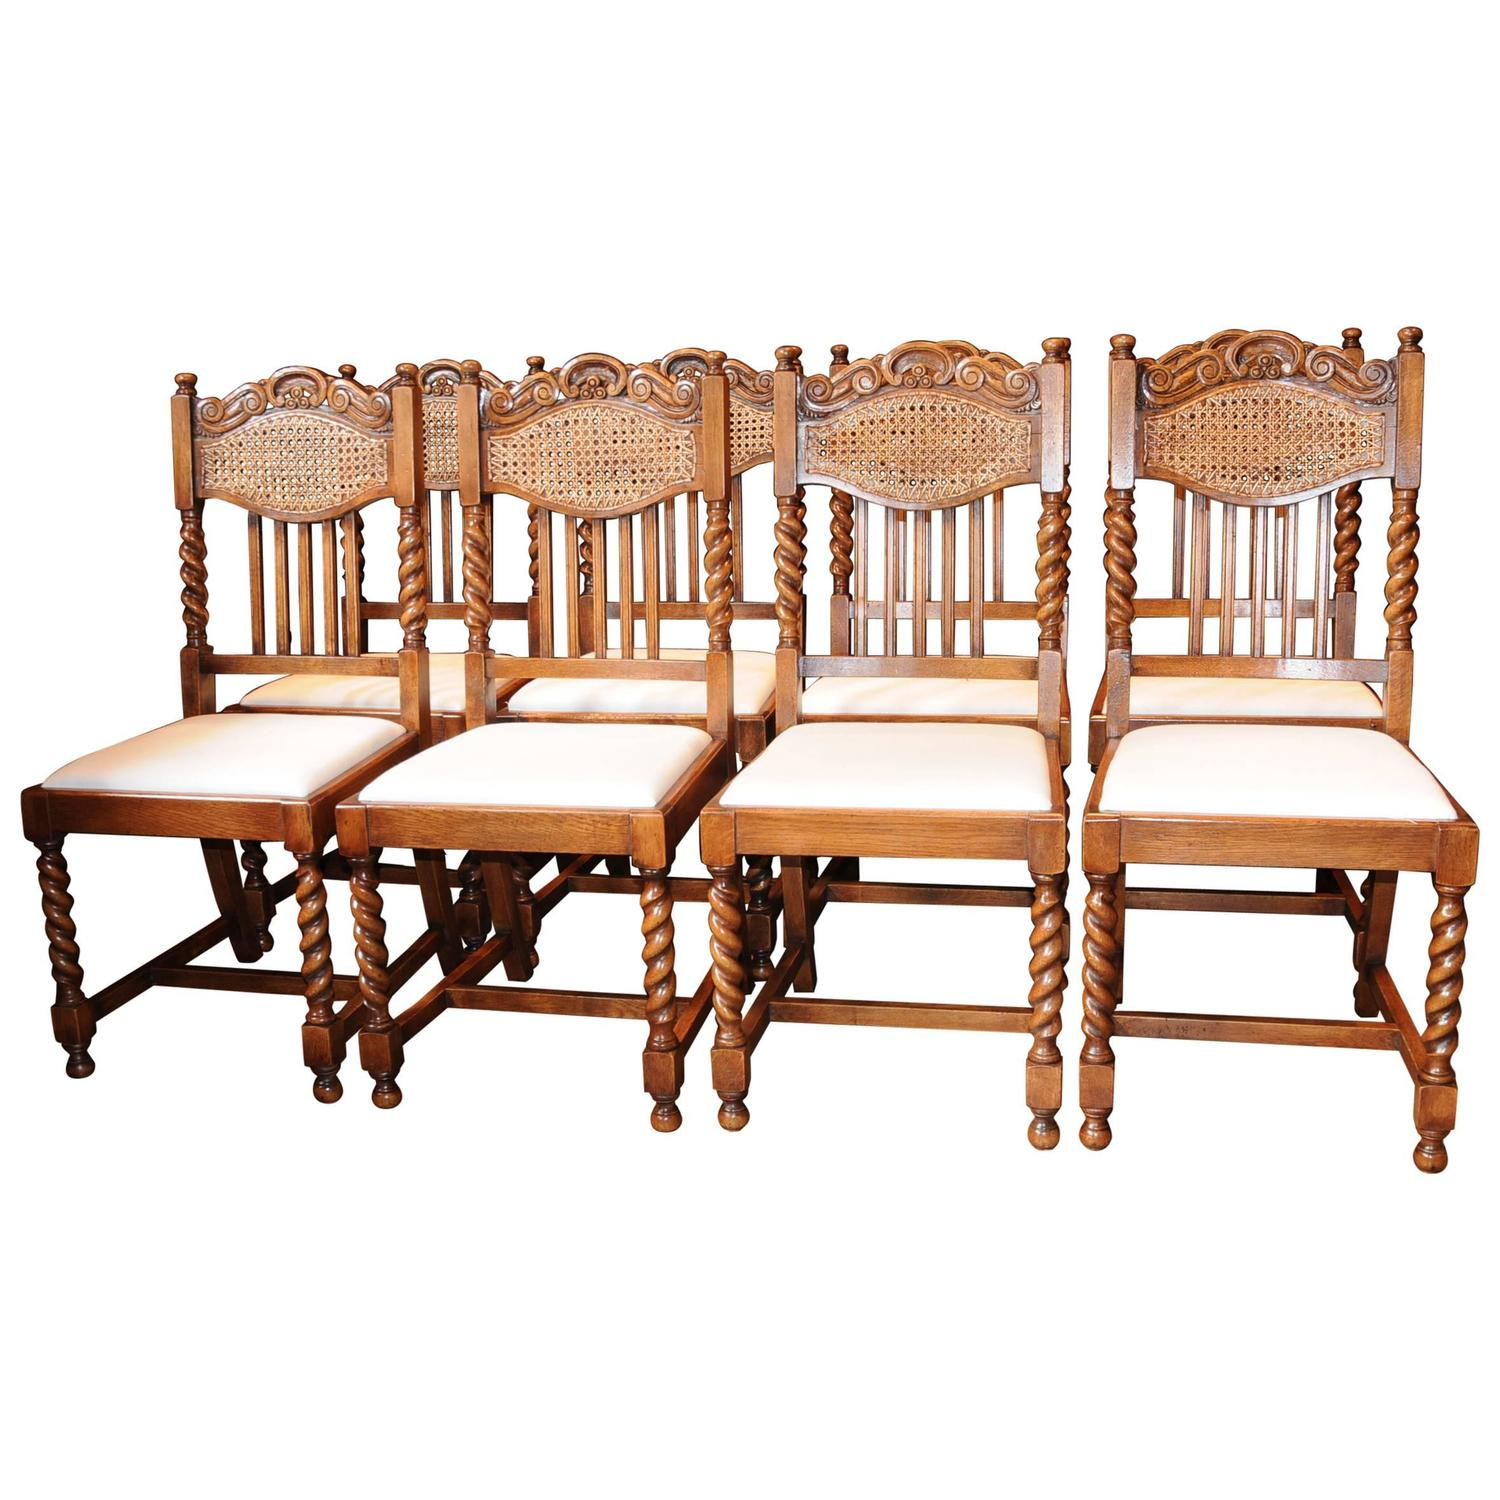 farmhouse chairs for sale chair rail designs ideas set of eight barley twist dining kitchen